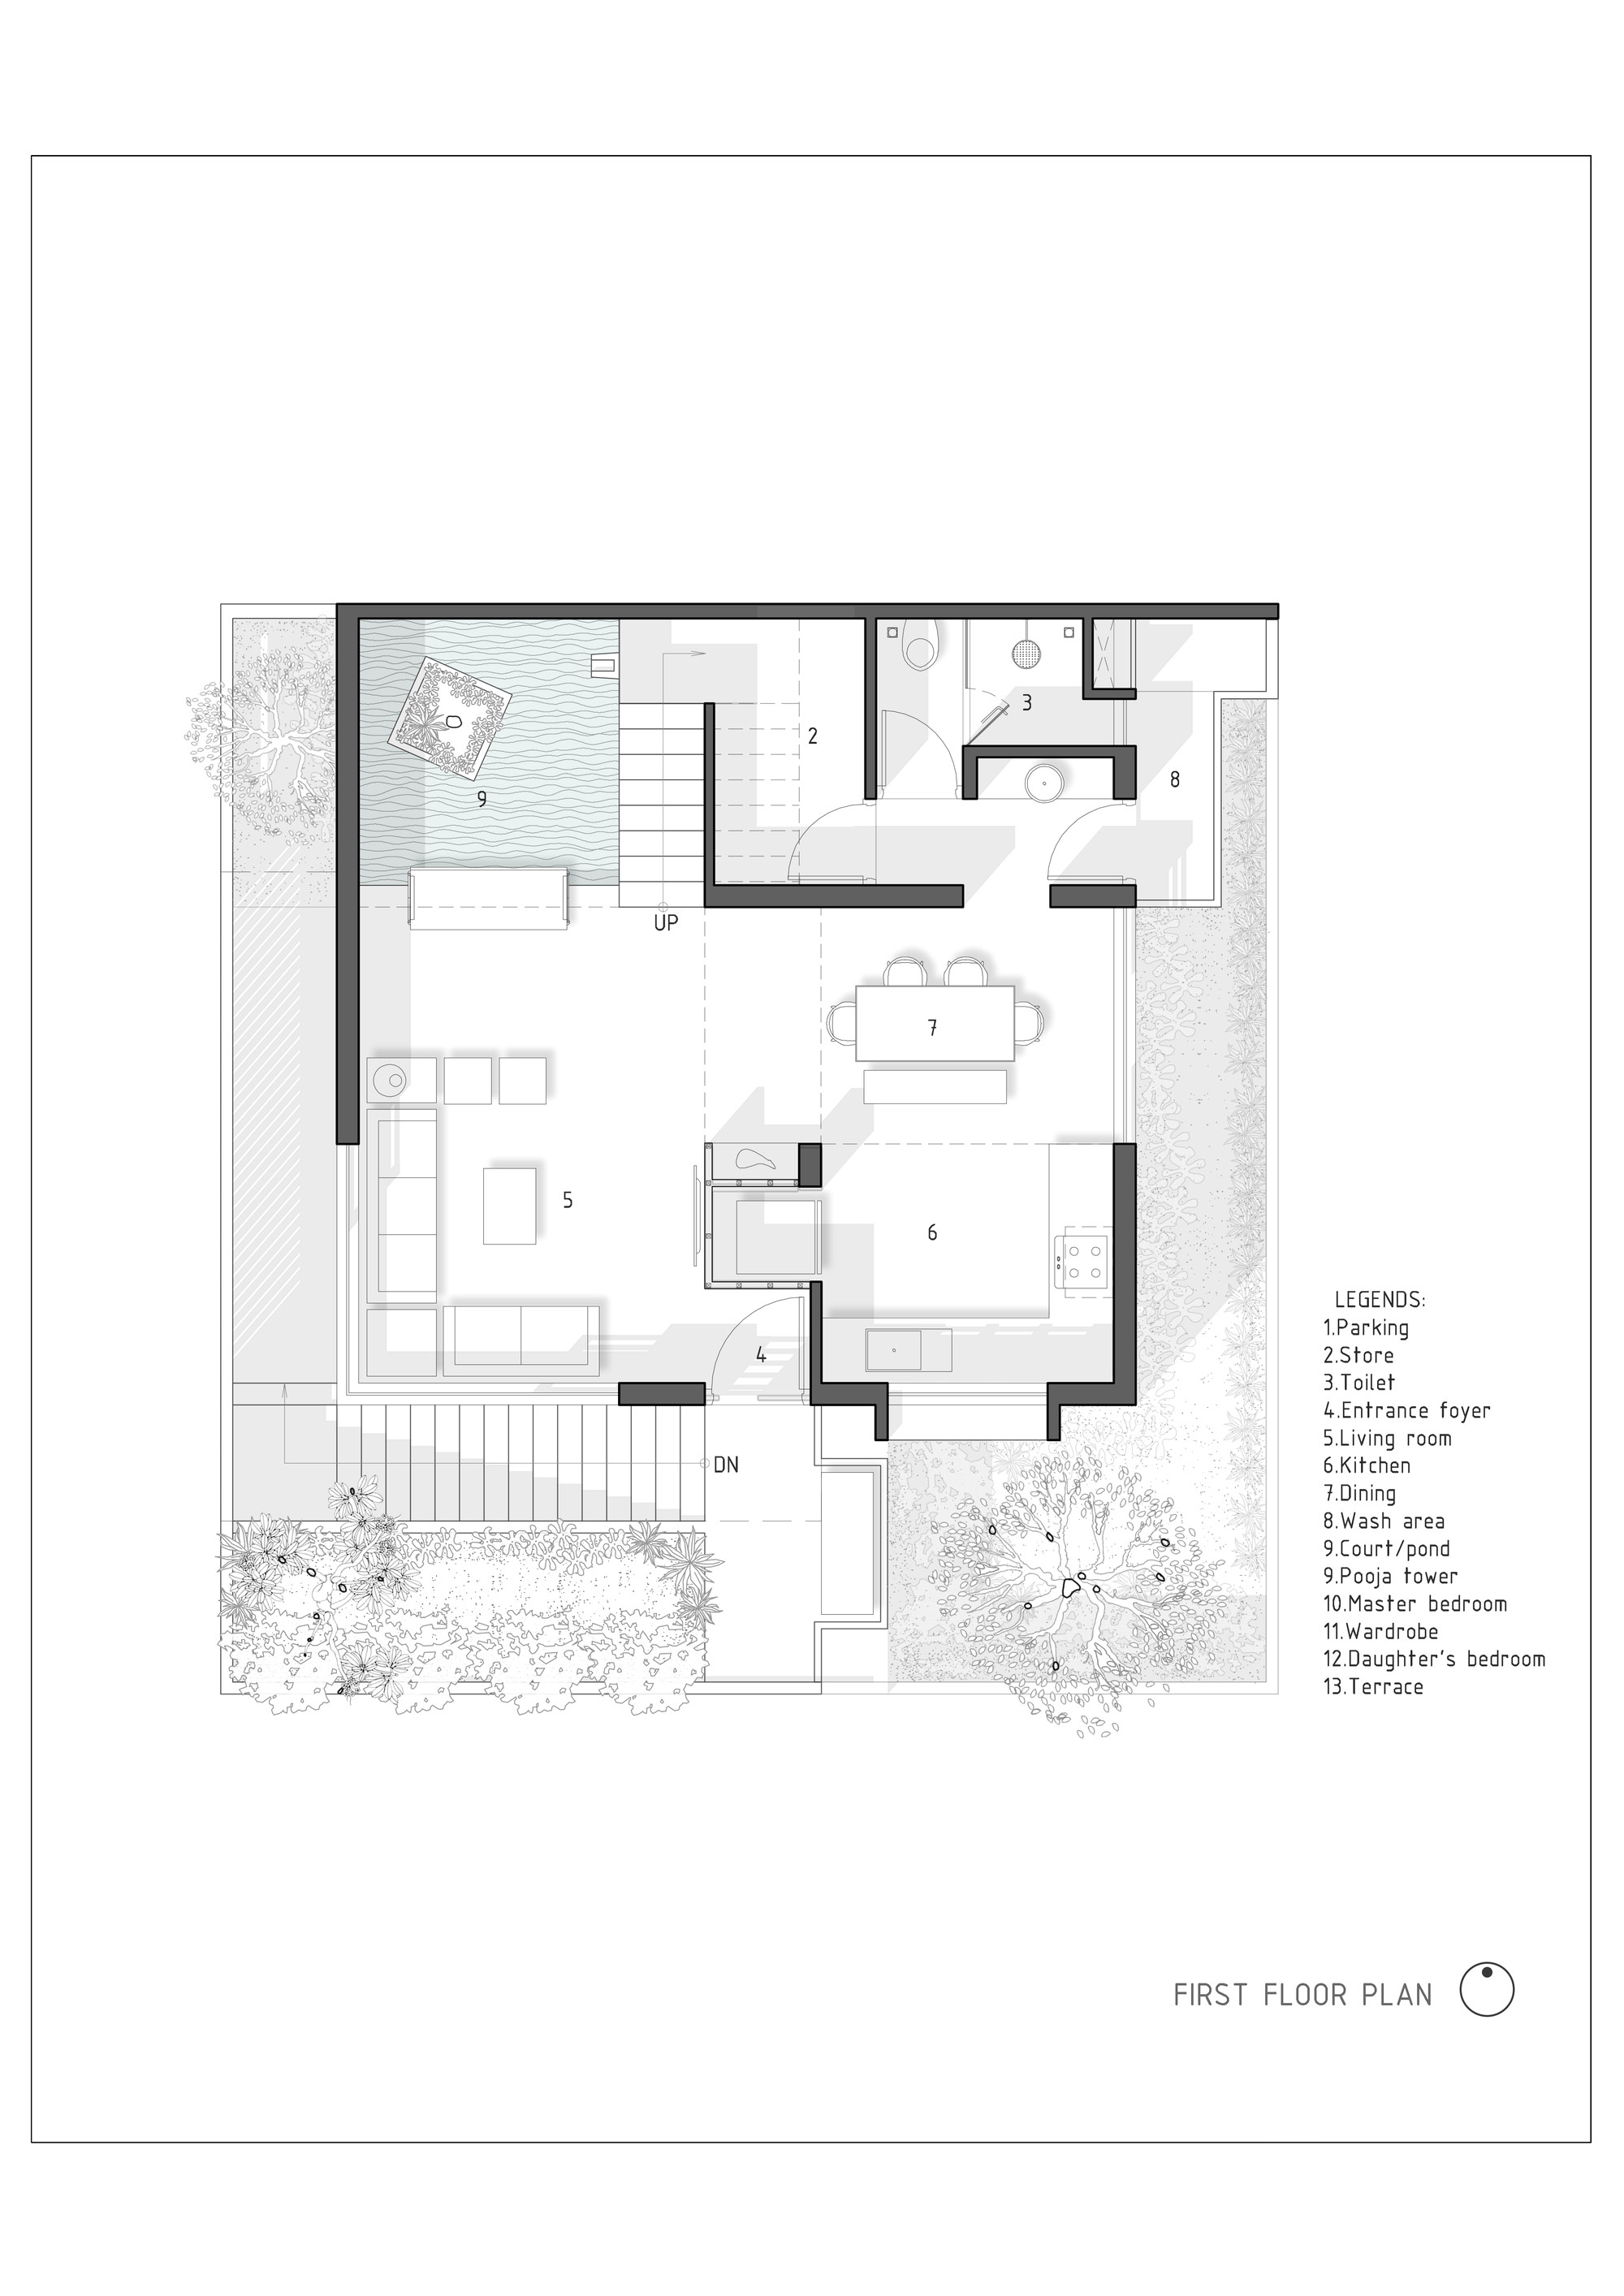 5a14e339b22e381ec7000020 the h cube house studio lagom first floor plan